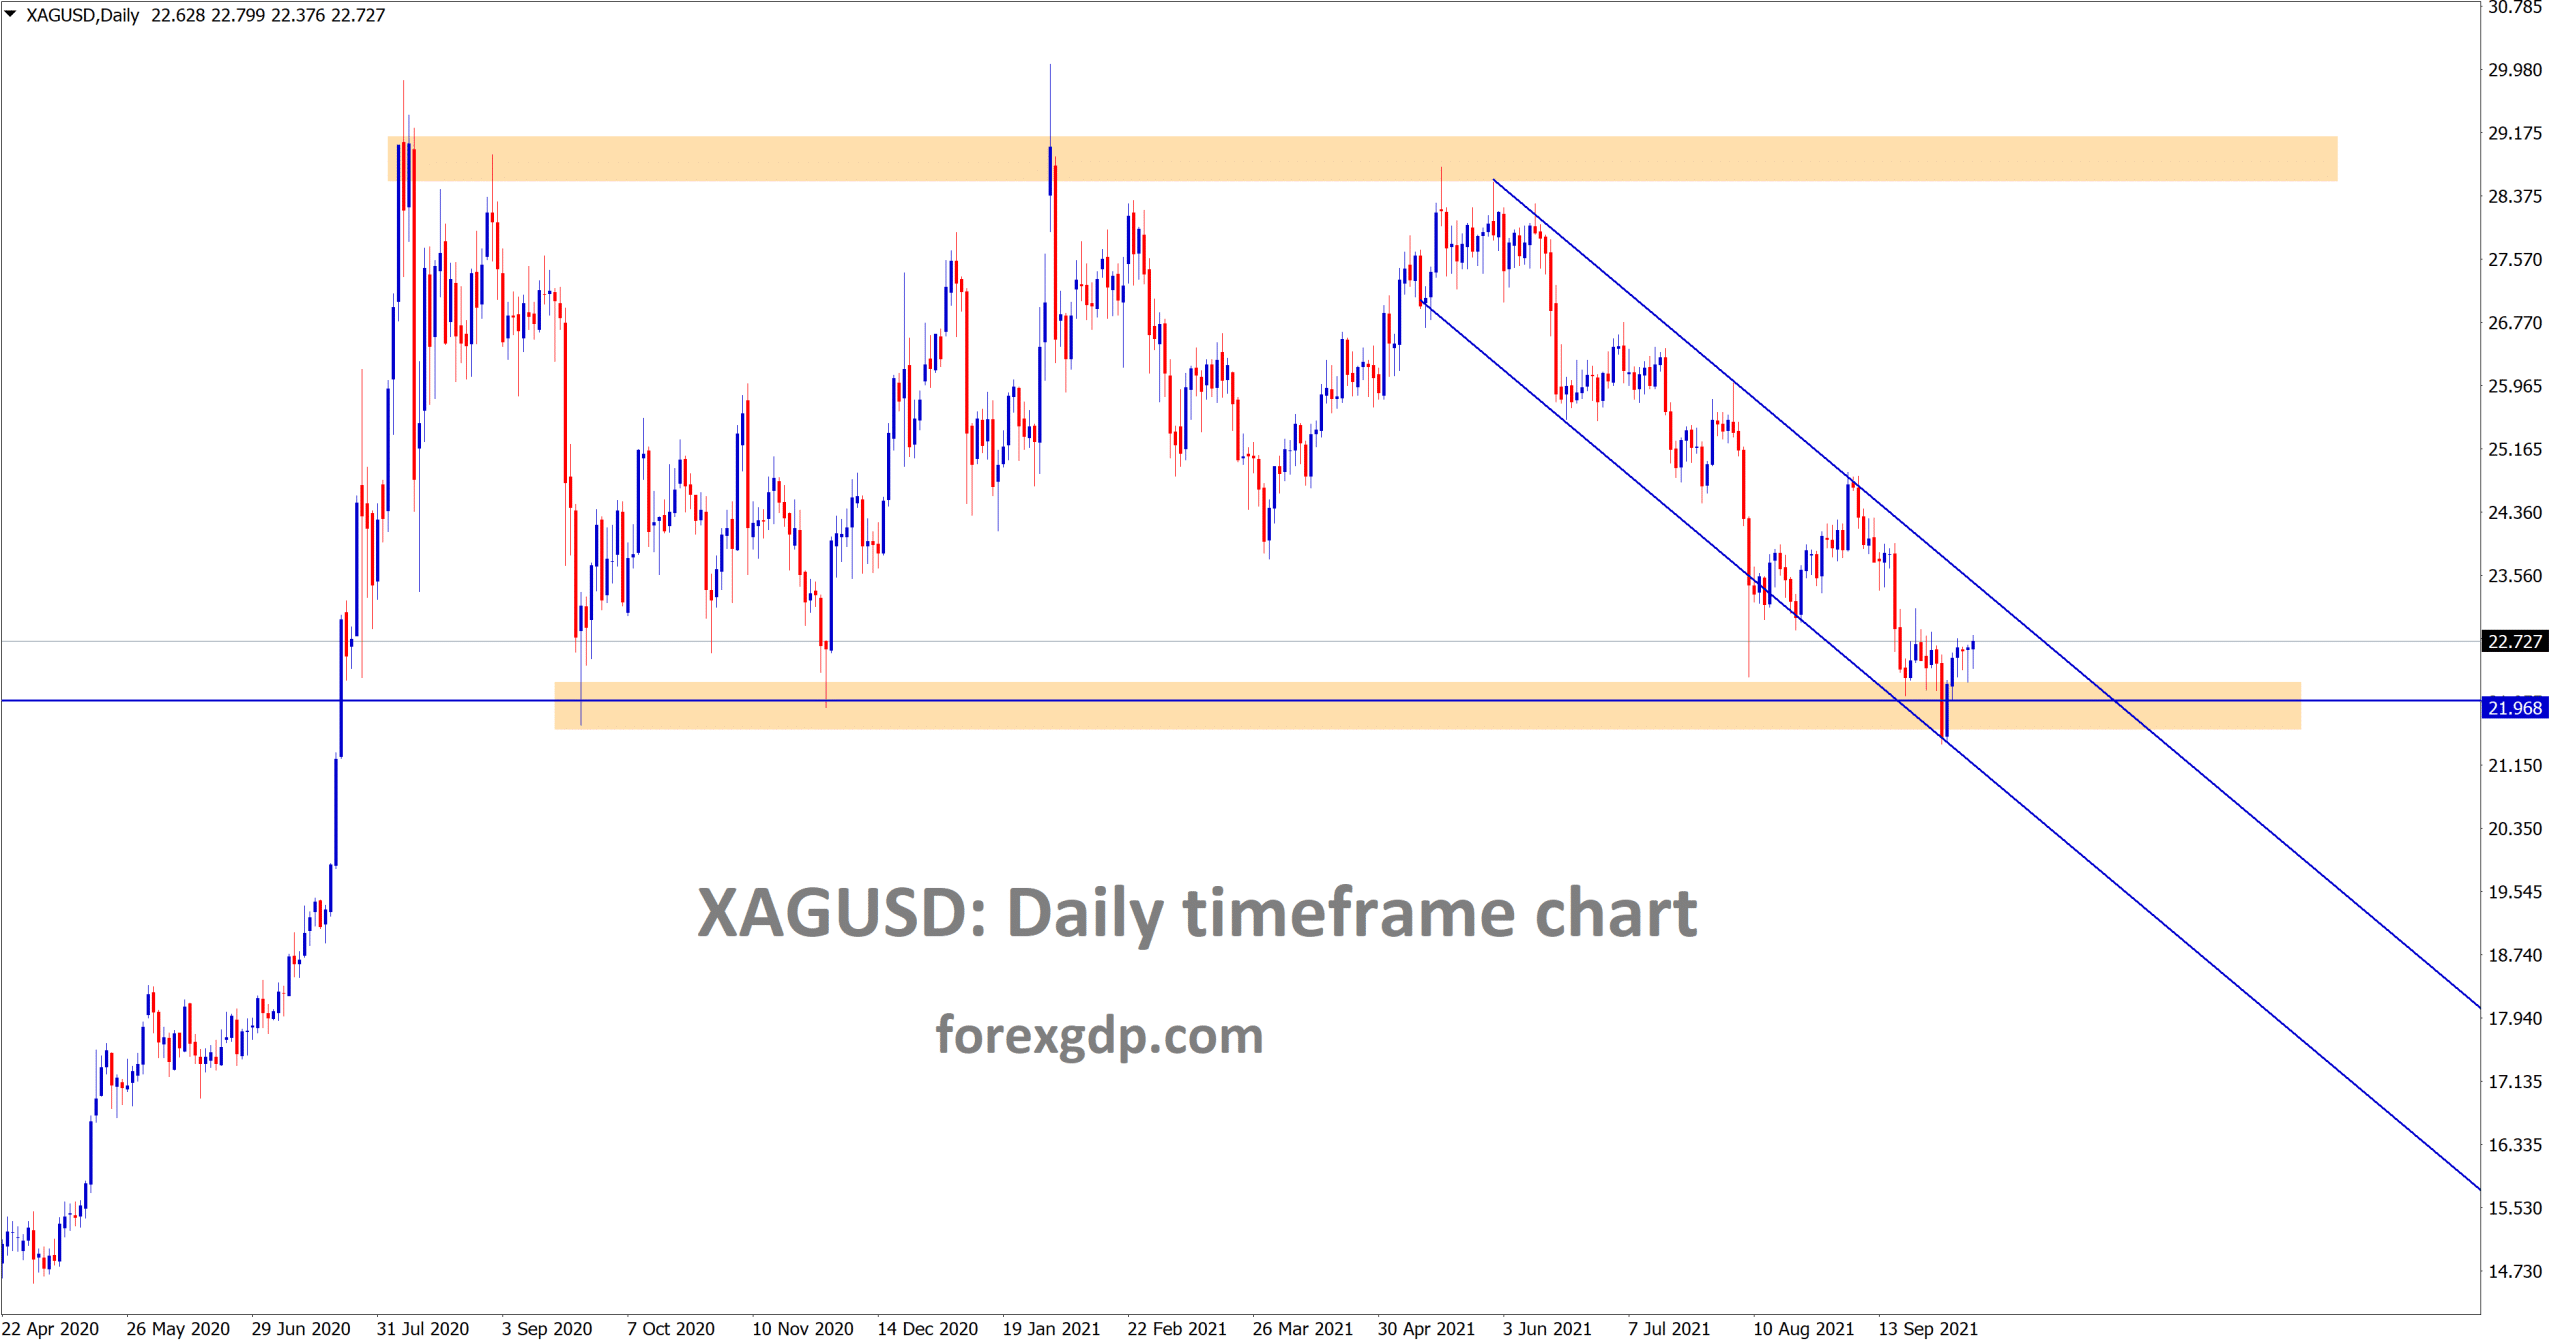 Silver XAGUSD is moving between the descending channel and its rebounding exactly from the horizontal support area